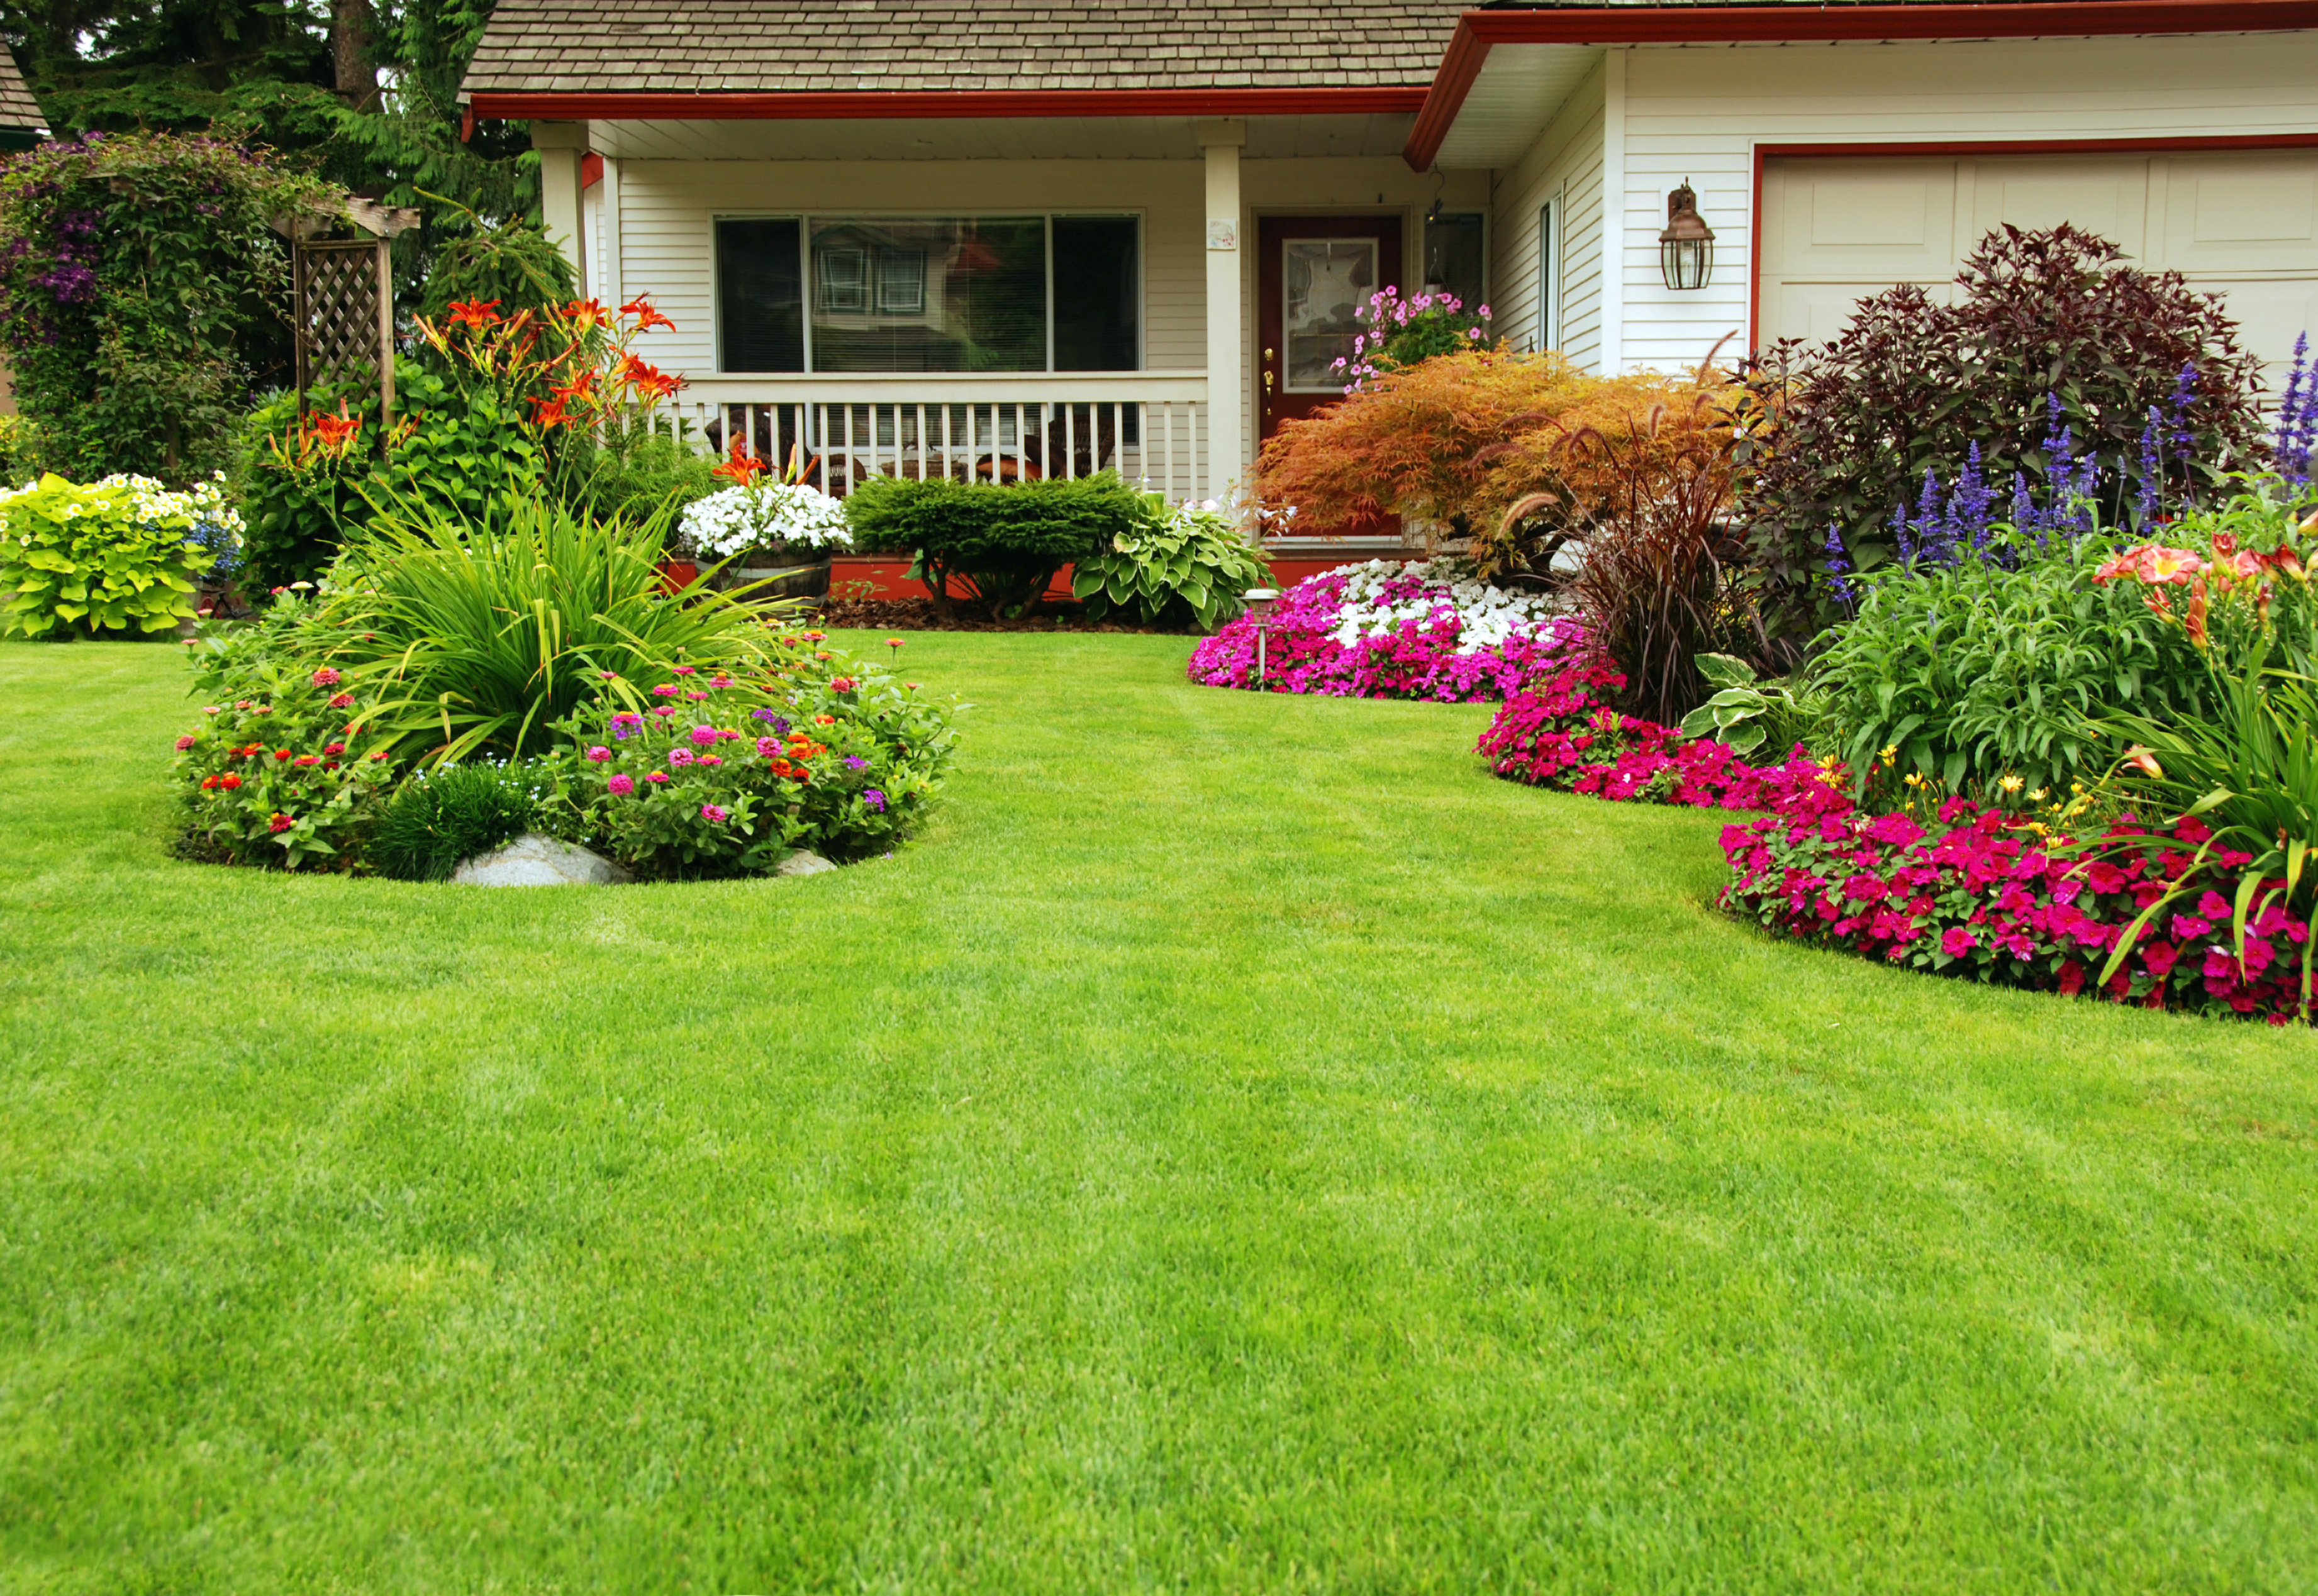 Landscaped garden with maintained lawn in Independence, KY